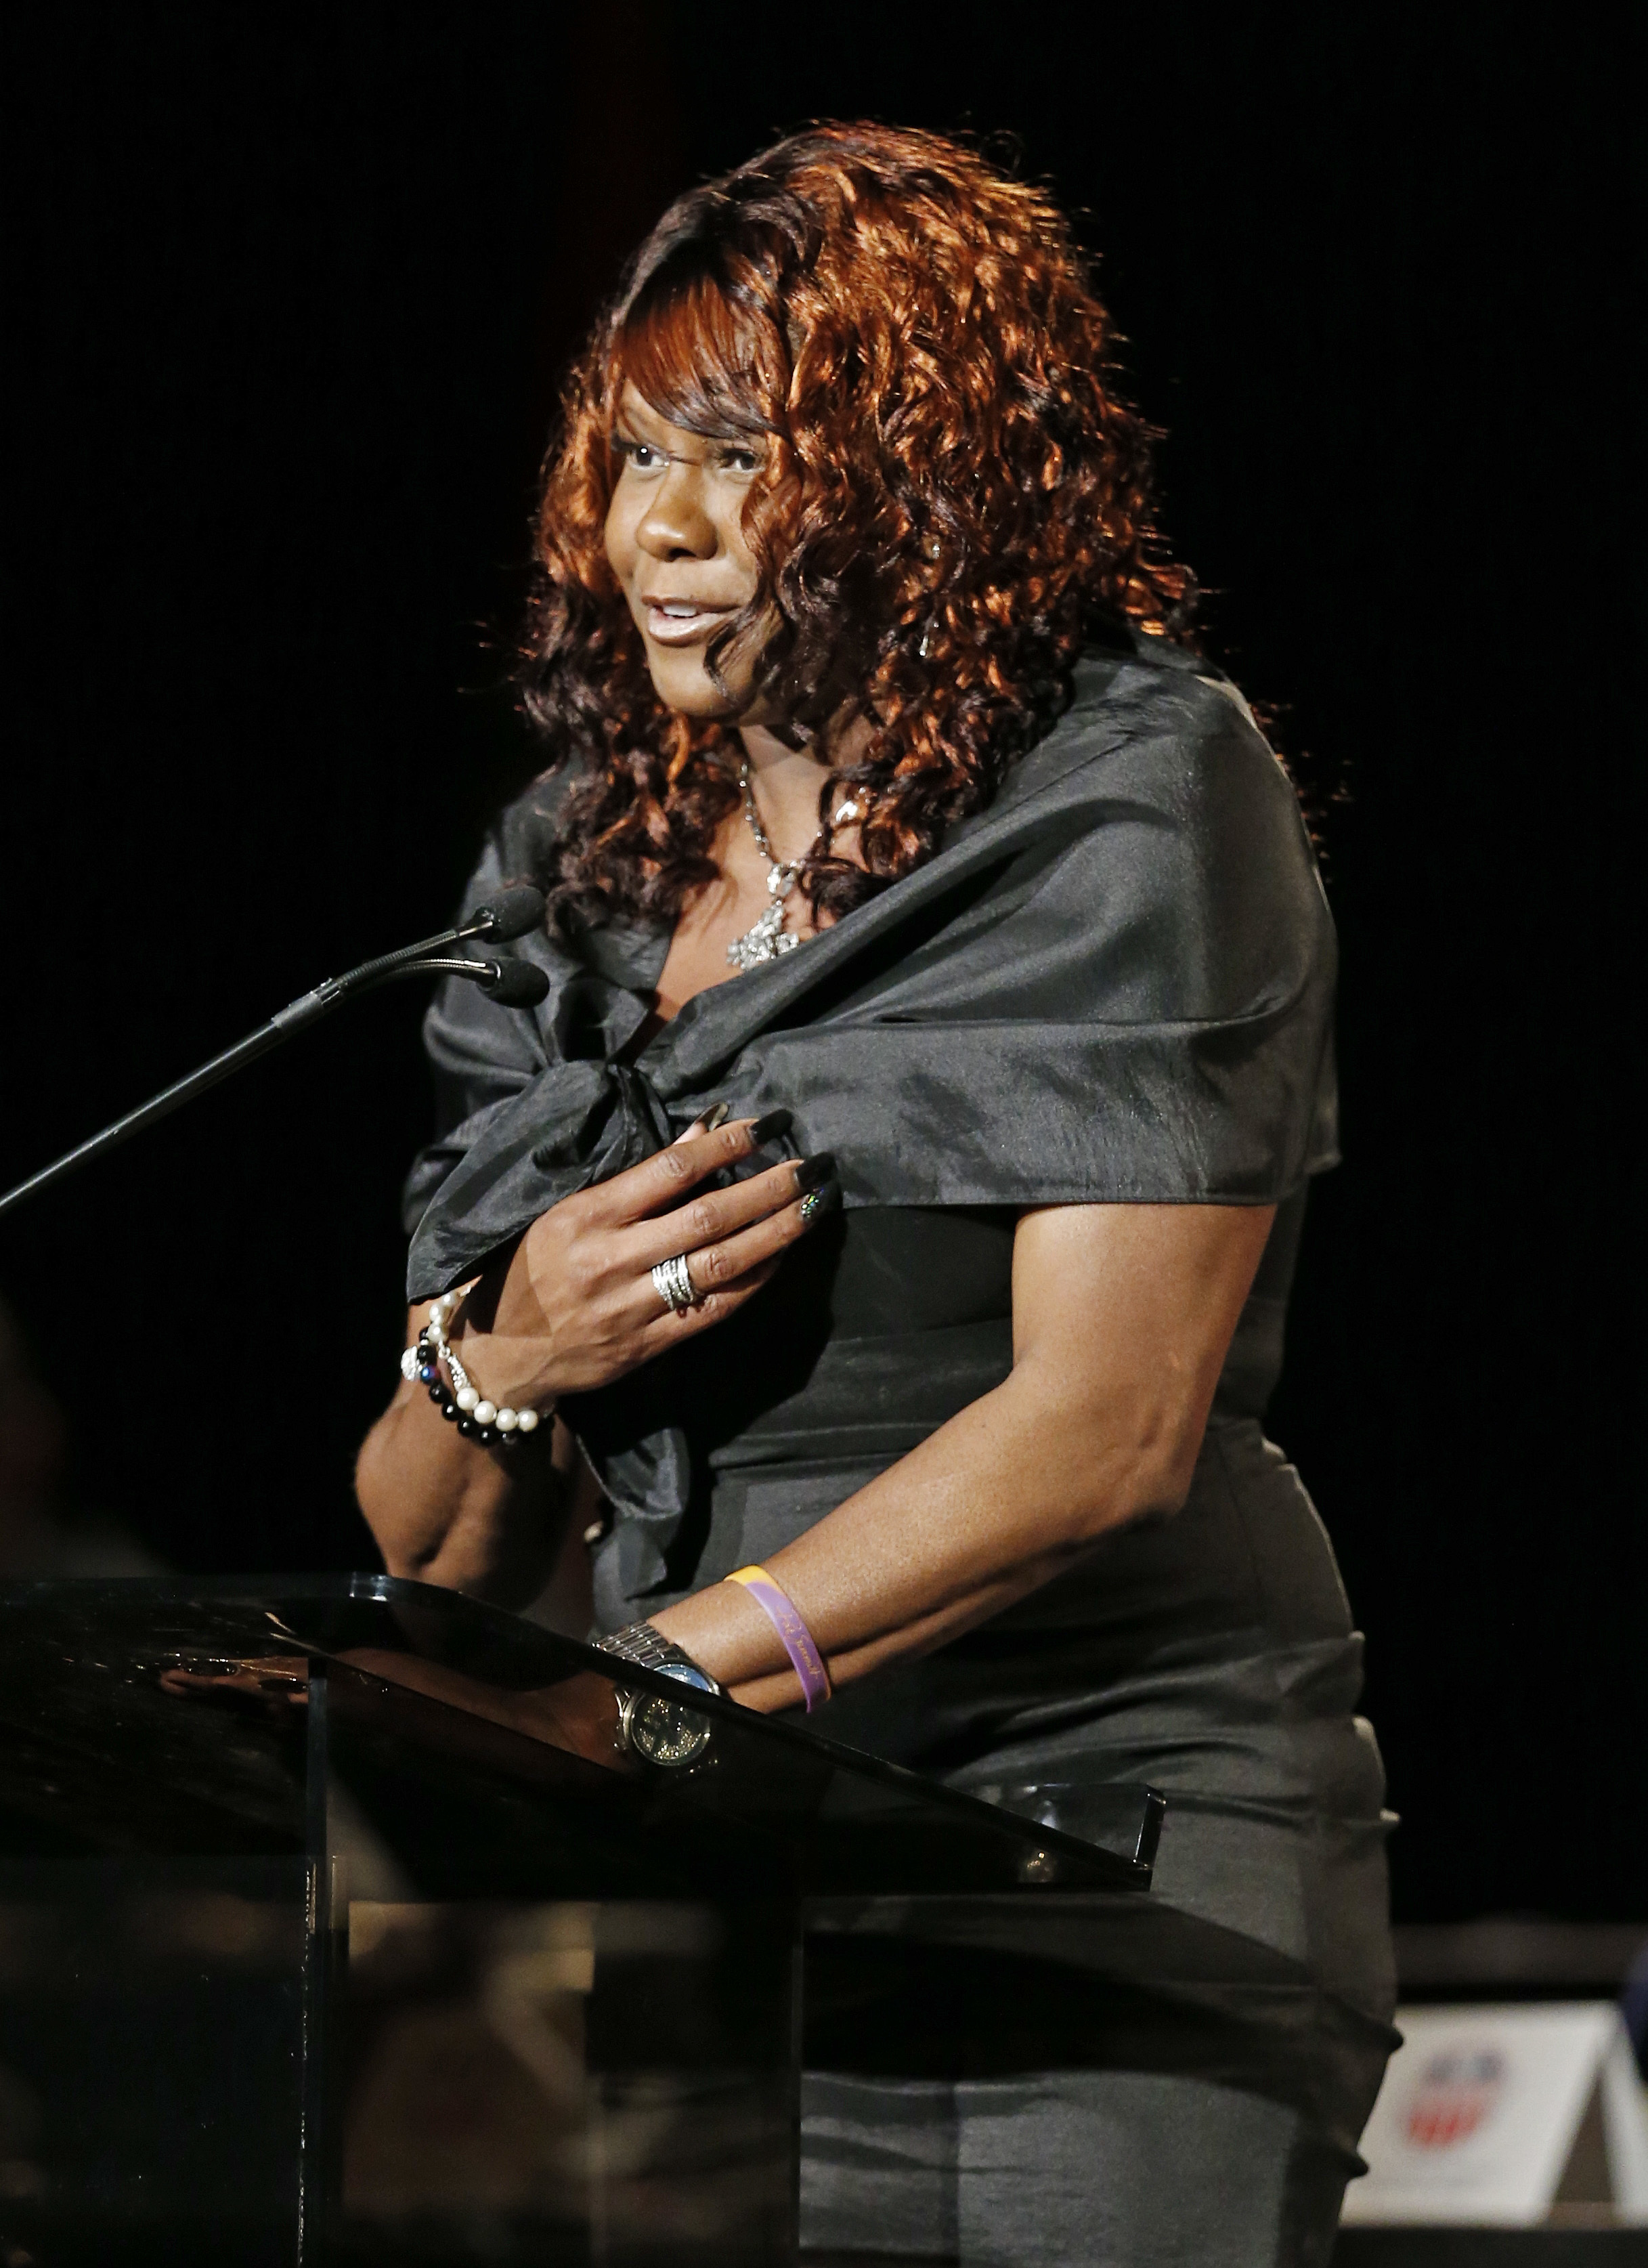 FILE - In this May 17, 2014, file photo, former Tennessee basketball player Bridgette Gordon speaks after being inducted into the Tennessee Sports Hall of Fame, in Nashville, Tenn. U.S. Olympic gold medalist Bridgette Gordon, who led Tennessee to two nati